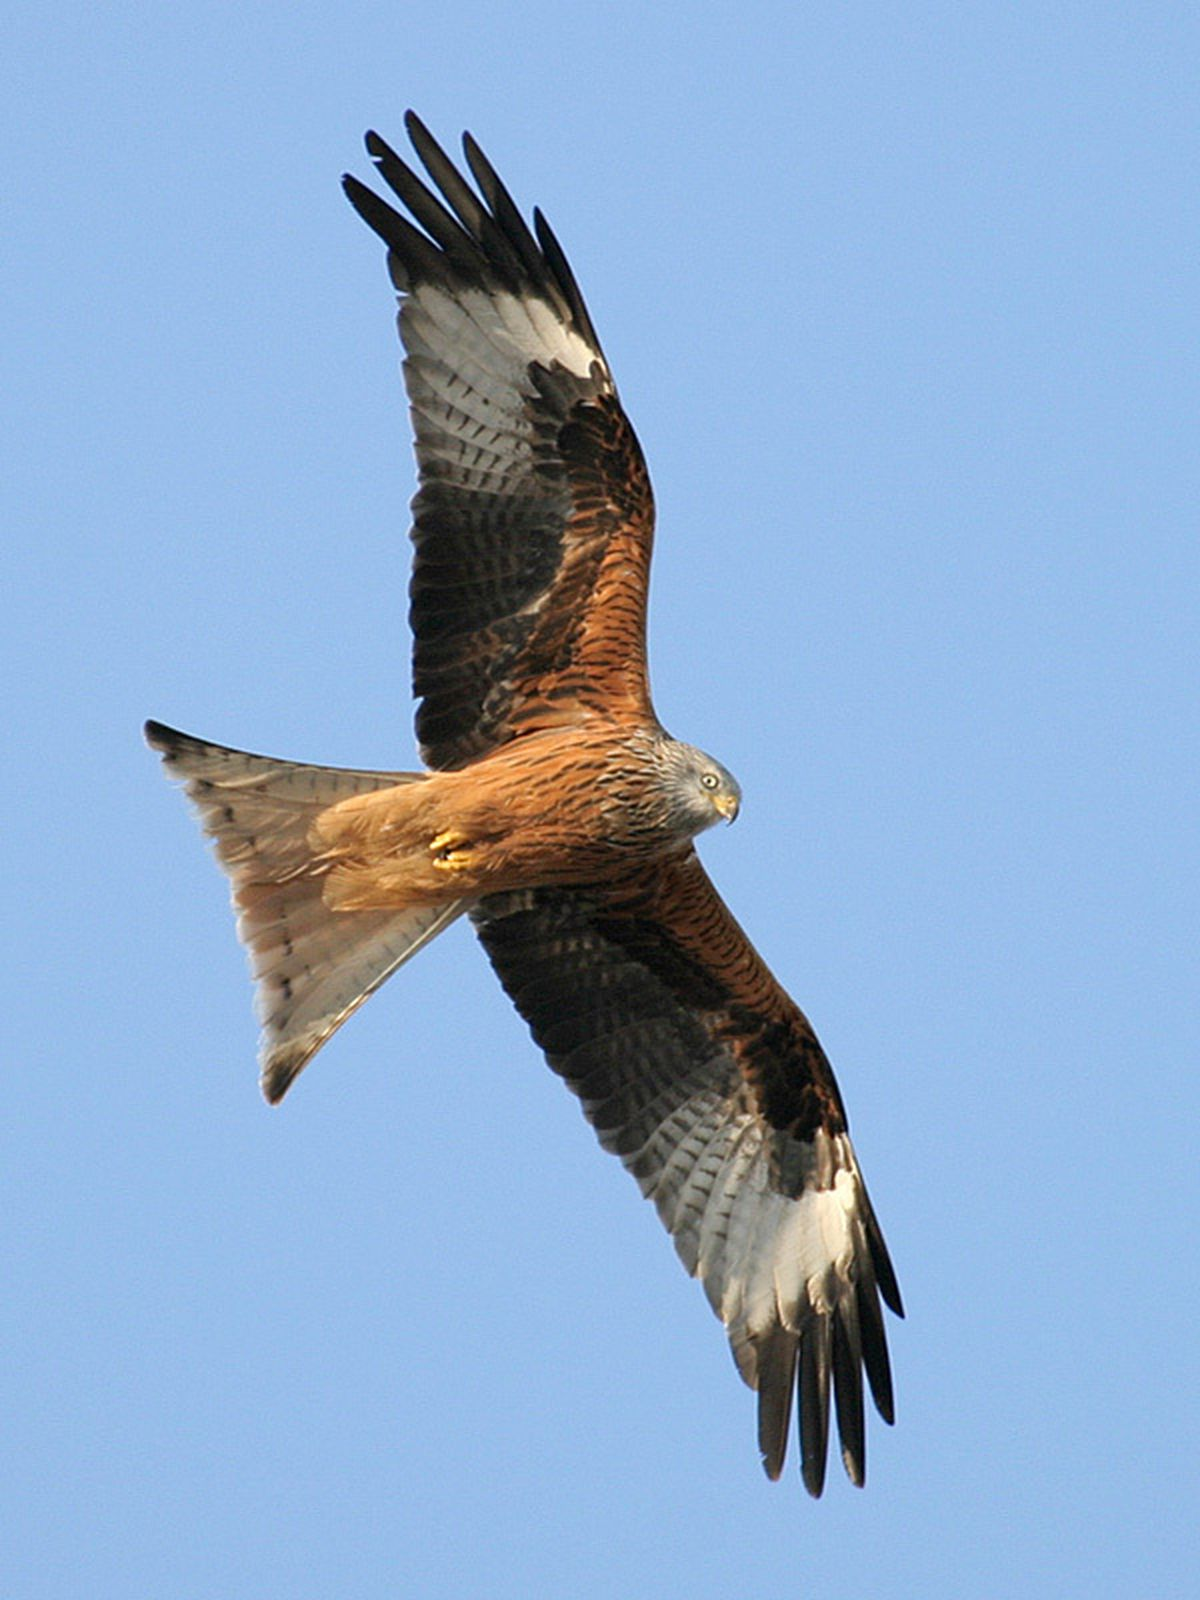 Red kites have also started appearing at the 'African savannah' at Holly Banks